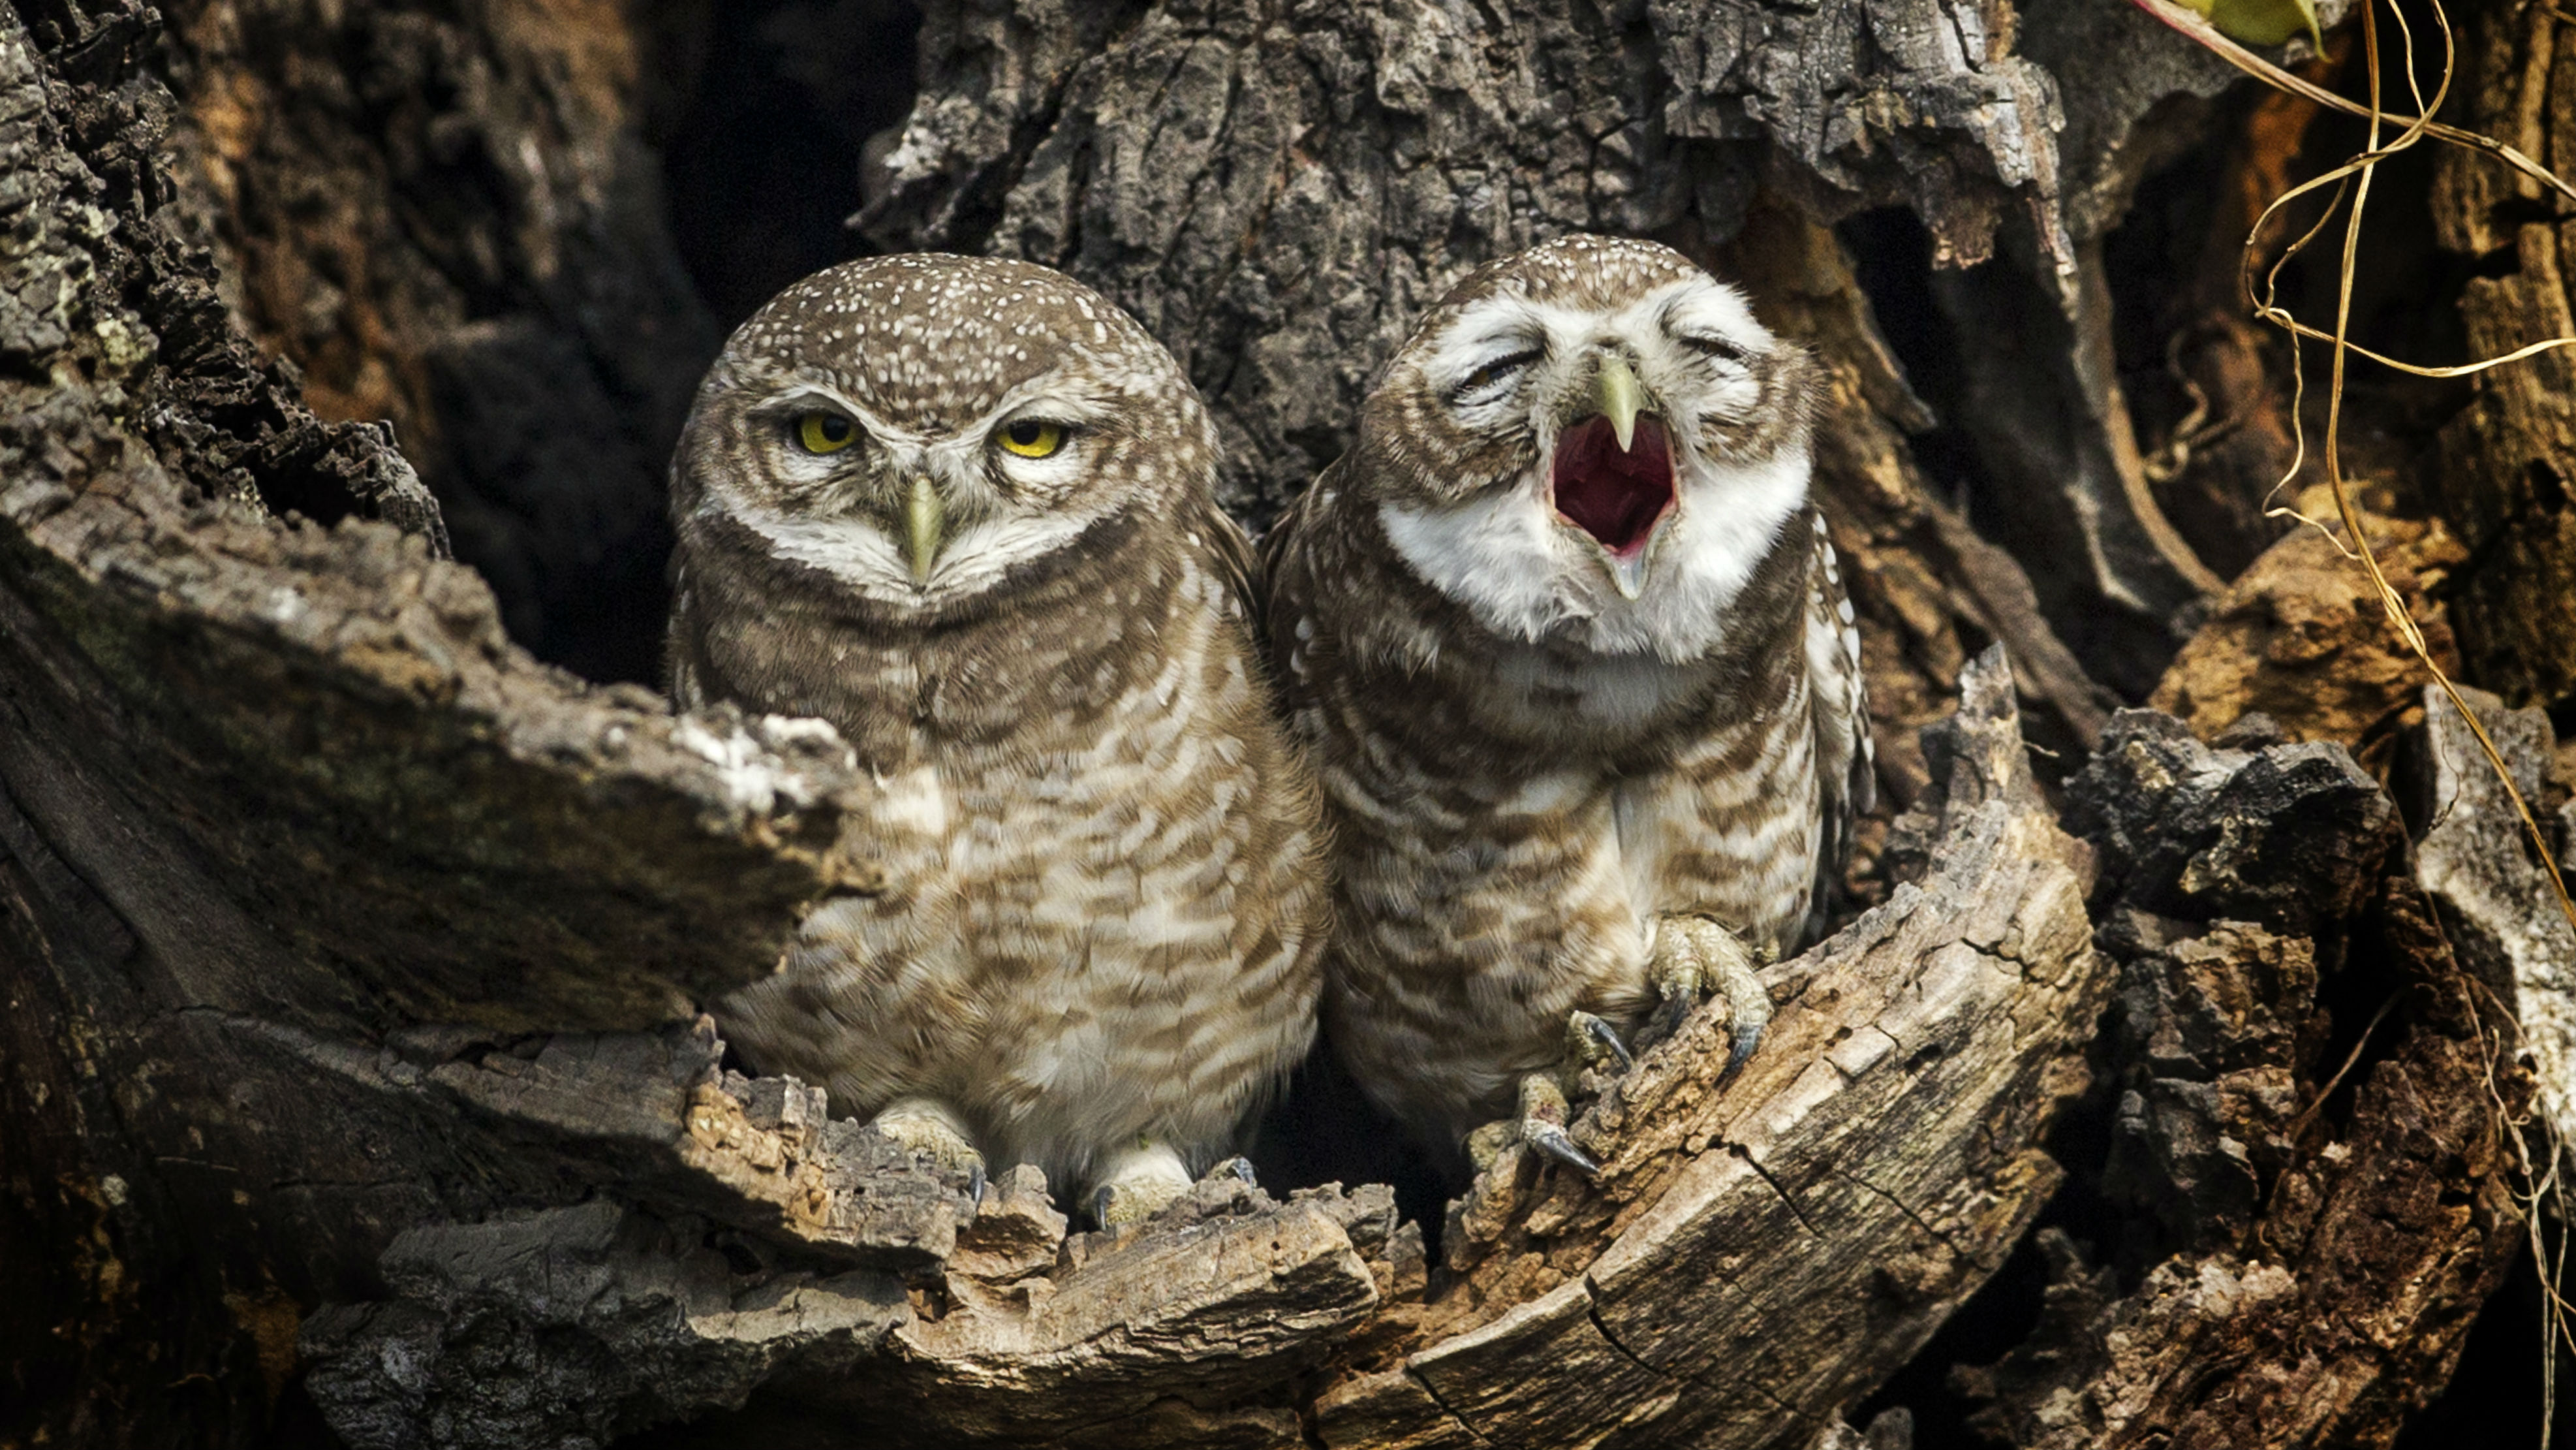 Owls are spotted sitting in hollow nest in Patan, Nepal, 18 November 2015